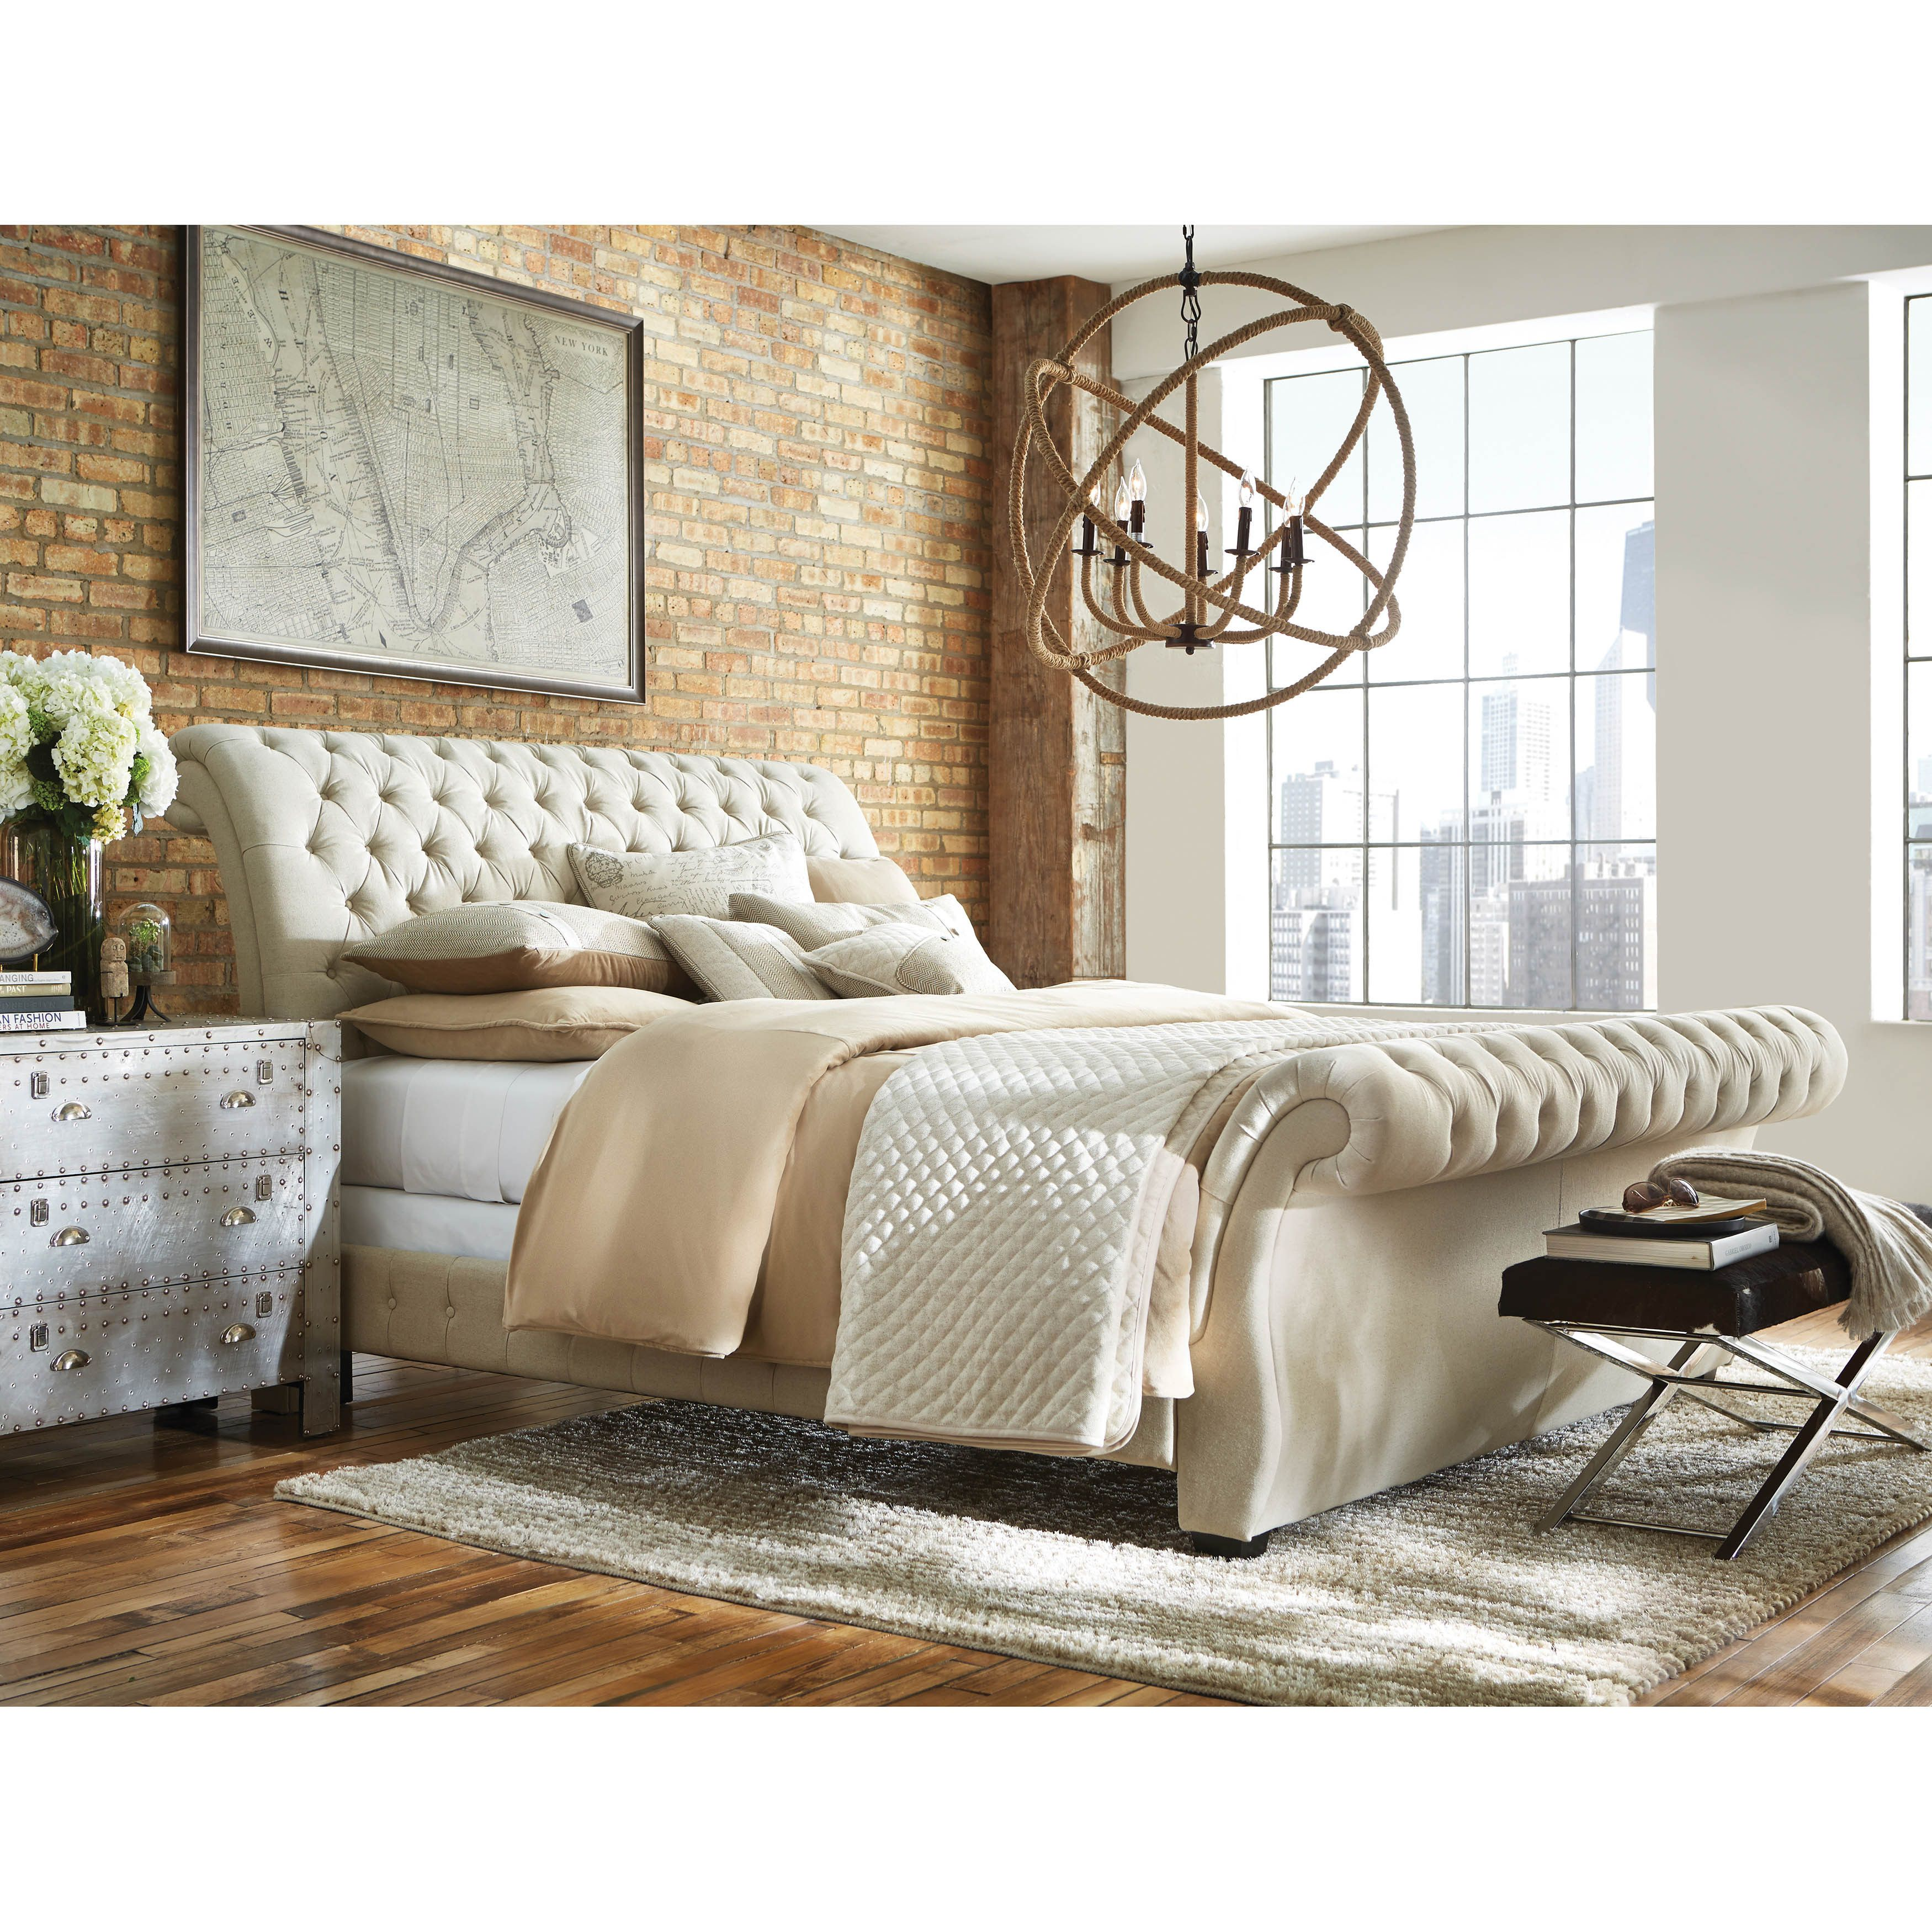 From the bombay collection upholstered sleigh bed made in - Nebraska furniture mart queen bedroom sets ...